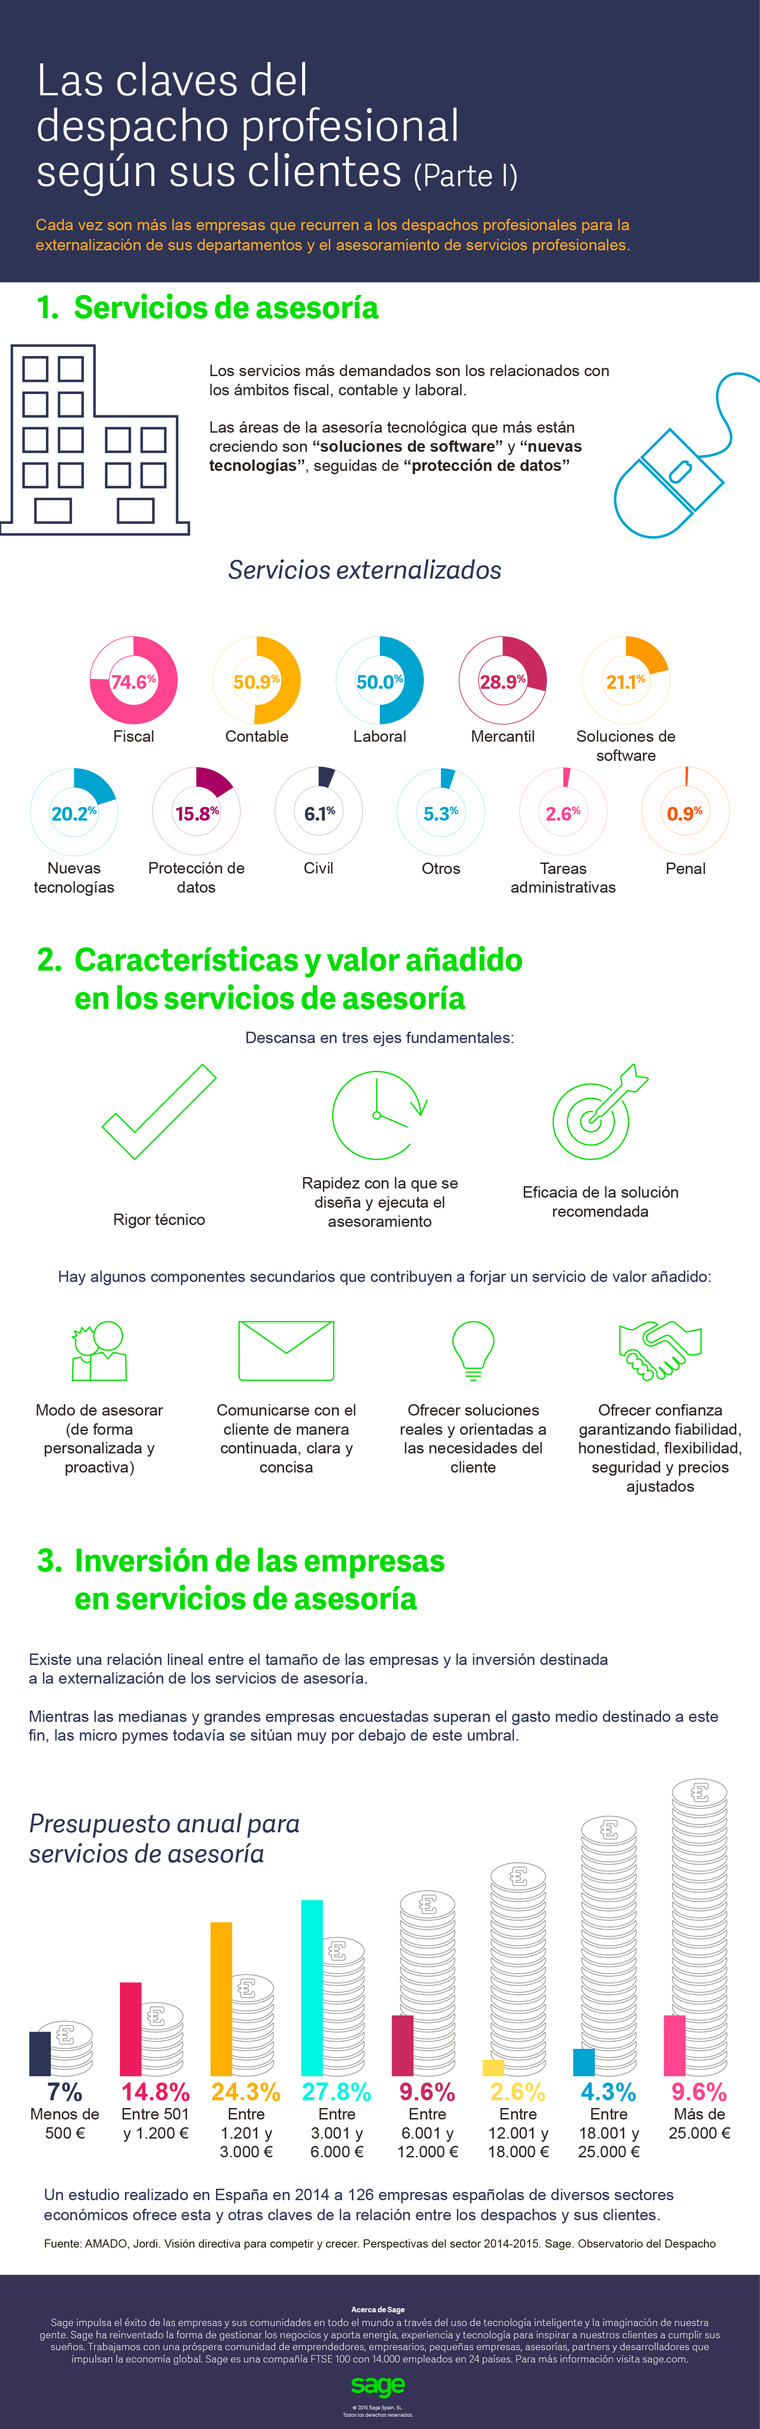 Las claves del despacho profesional según sus clientes (I) #infografia #infographic #marketing